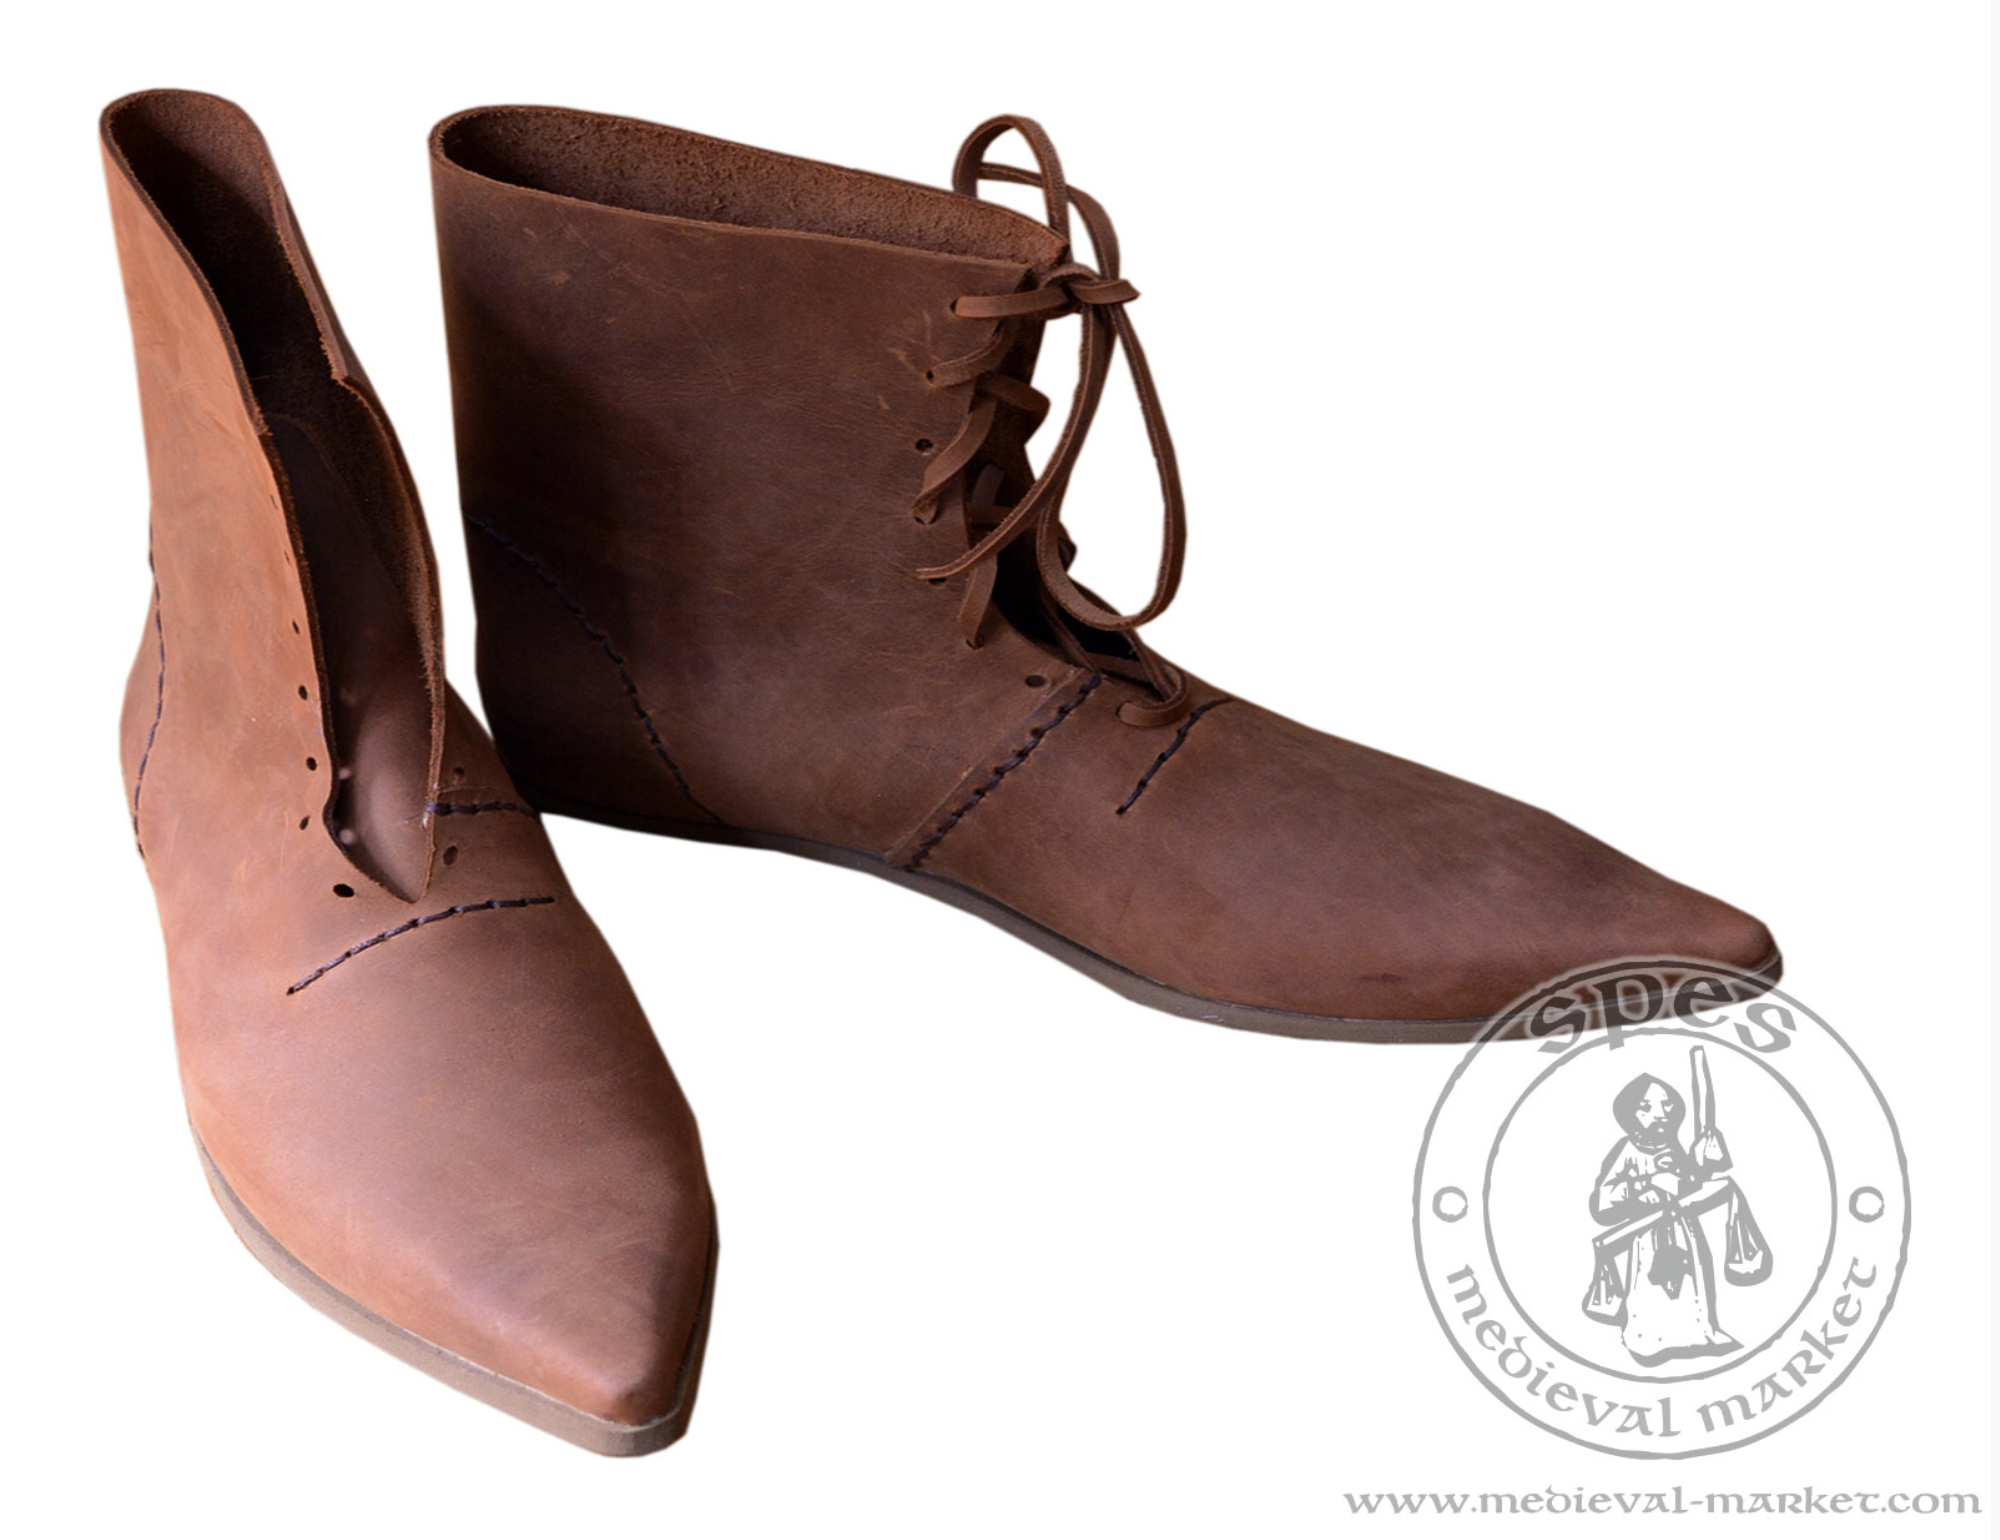 Chaussures Homme : MSS1431 - 190 €